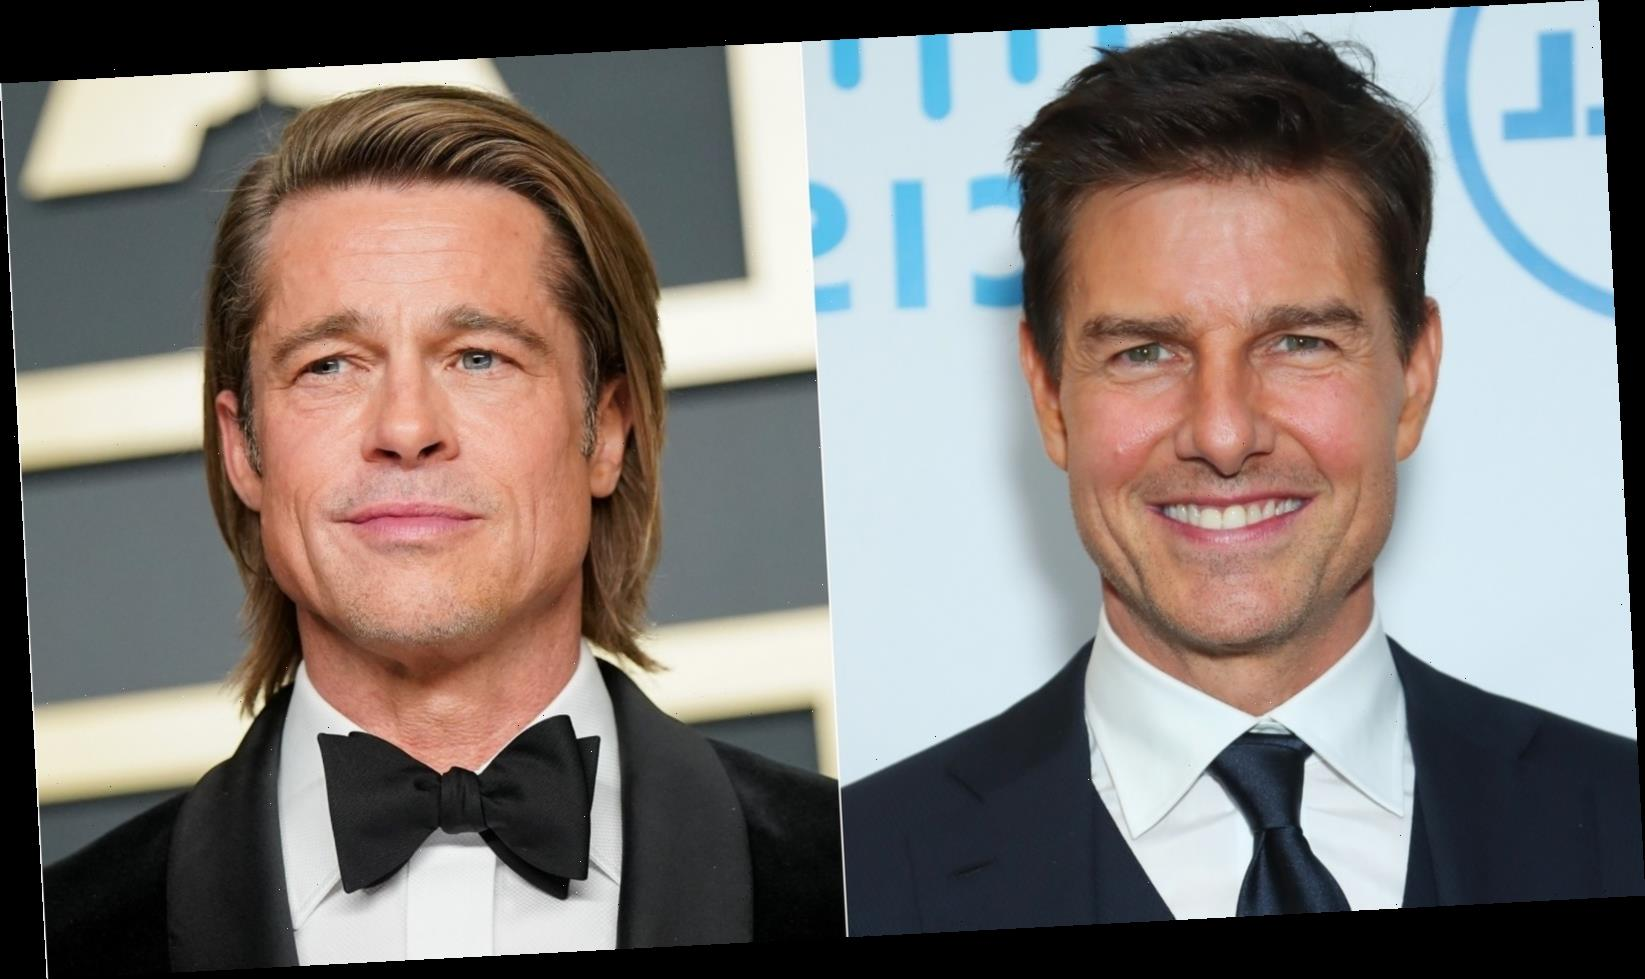 Tom Cruise And Brad Pitt Don't Get Along. Here's Why.